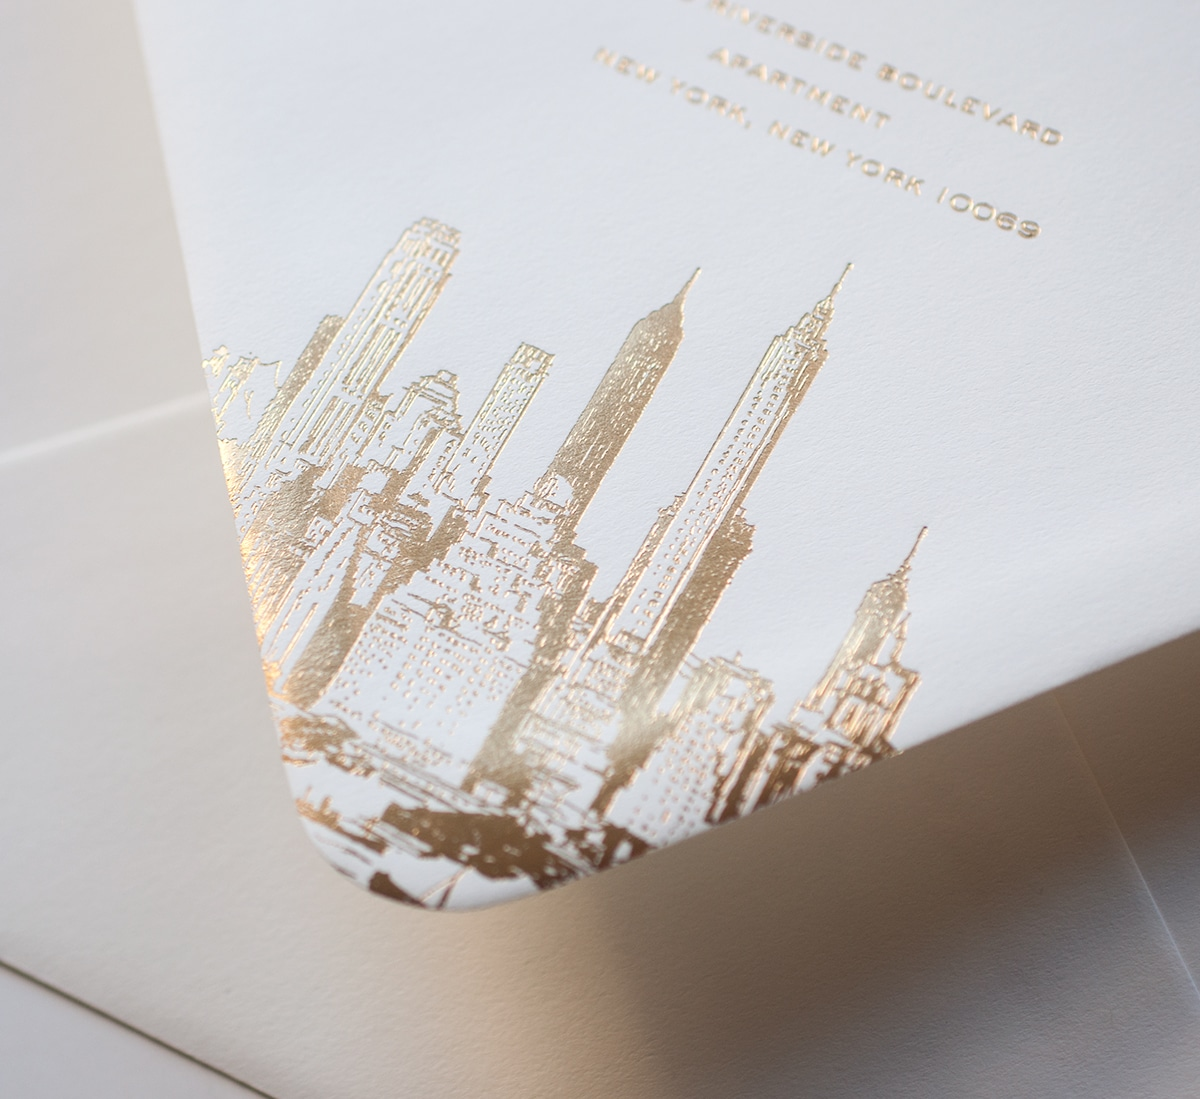 Gold NYC skyline envelope